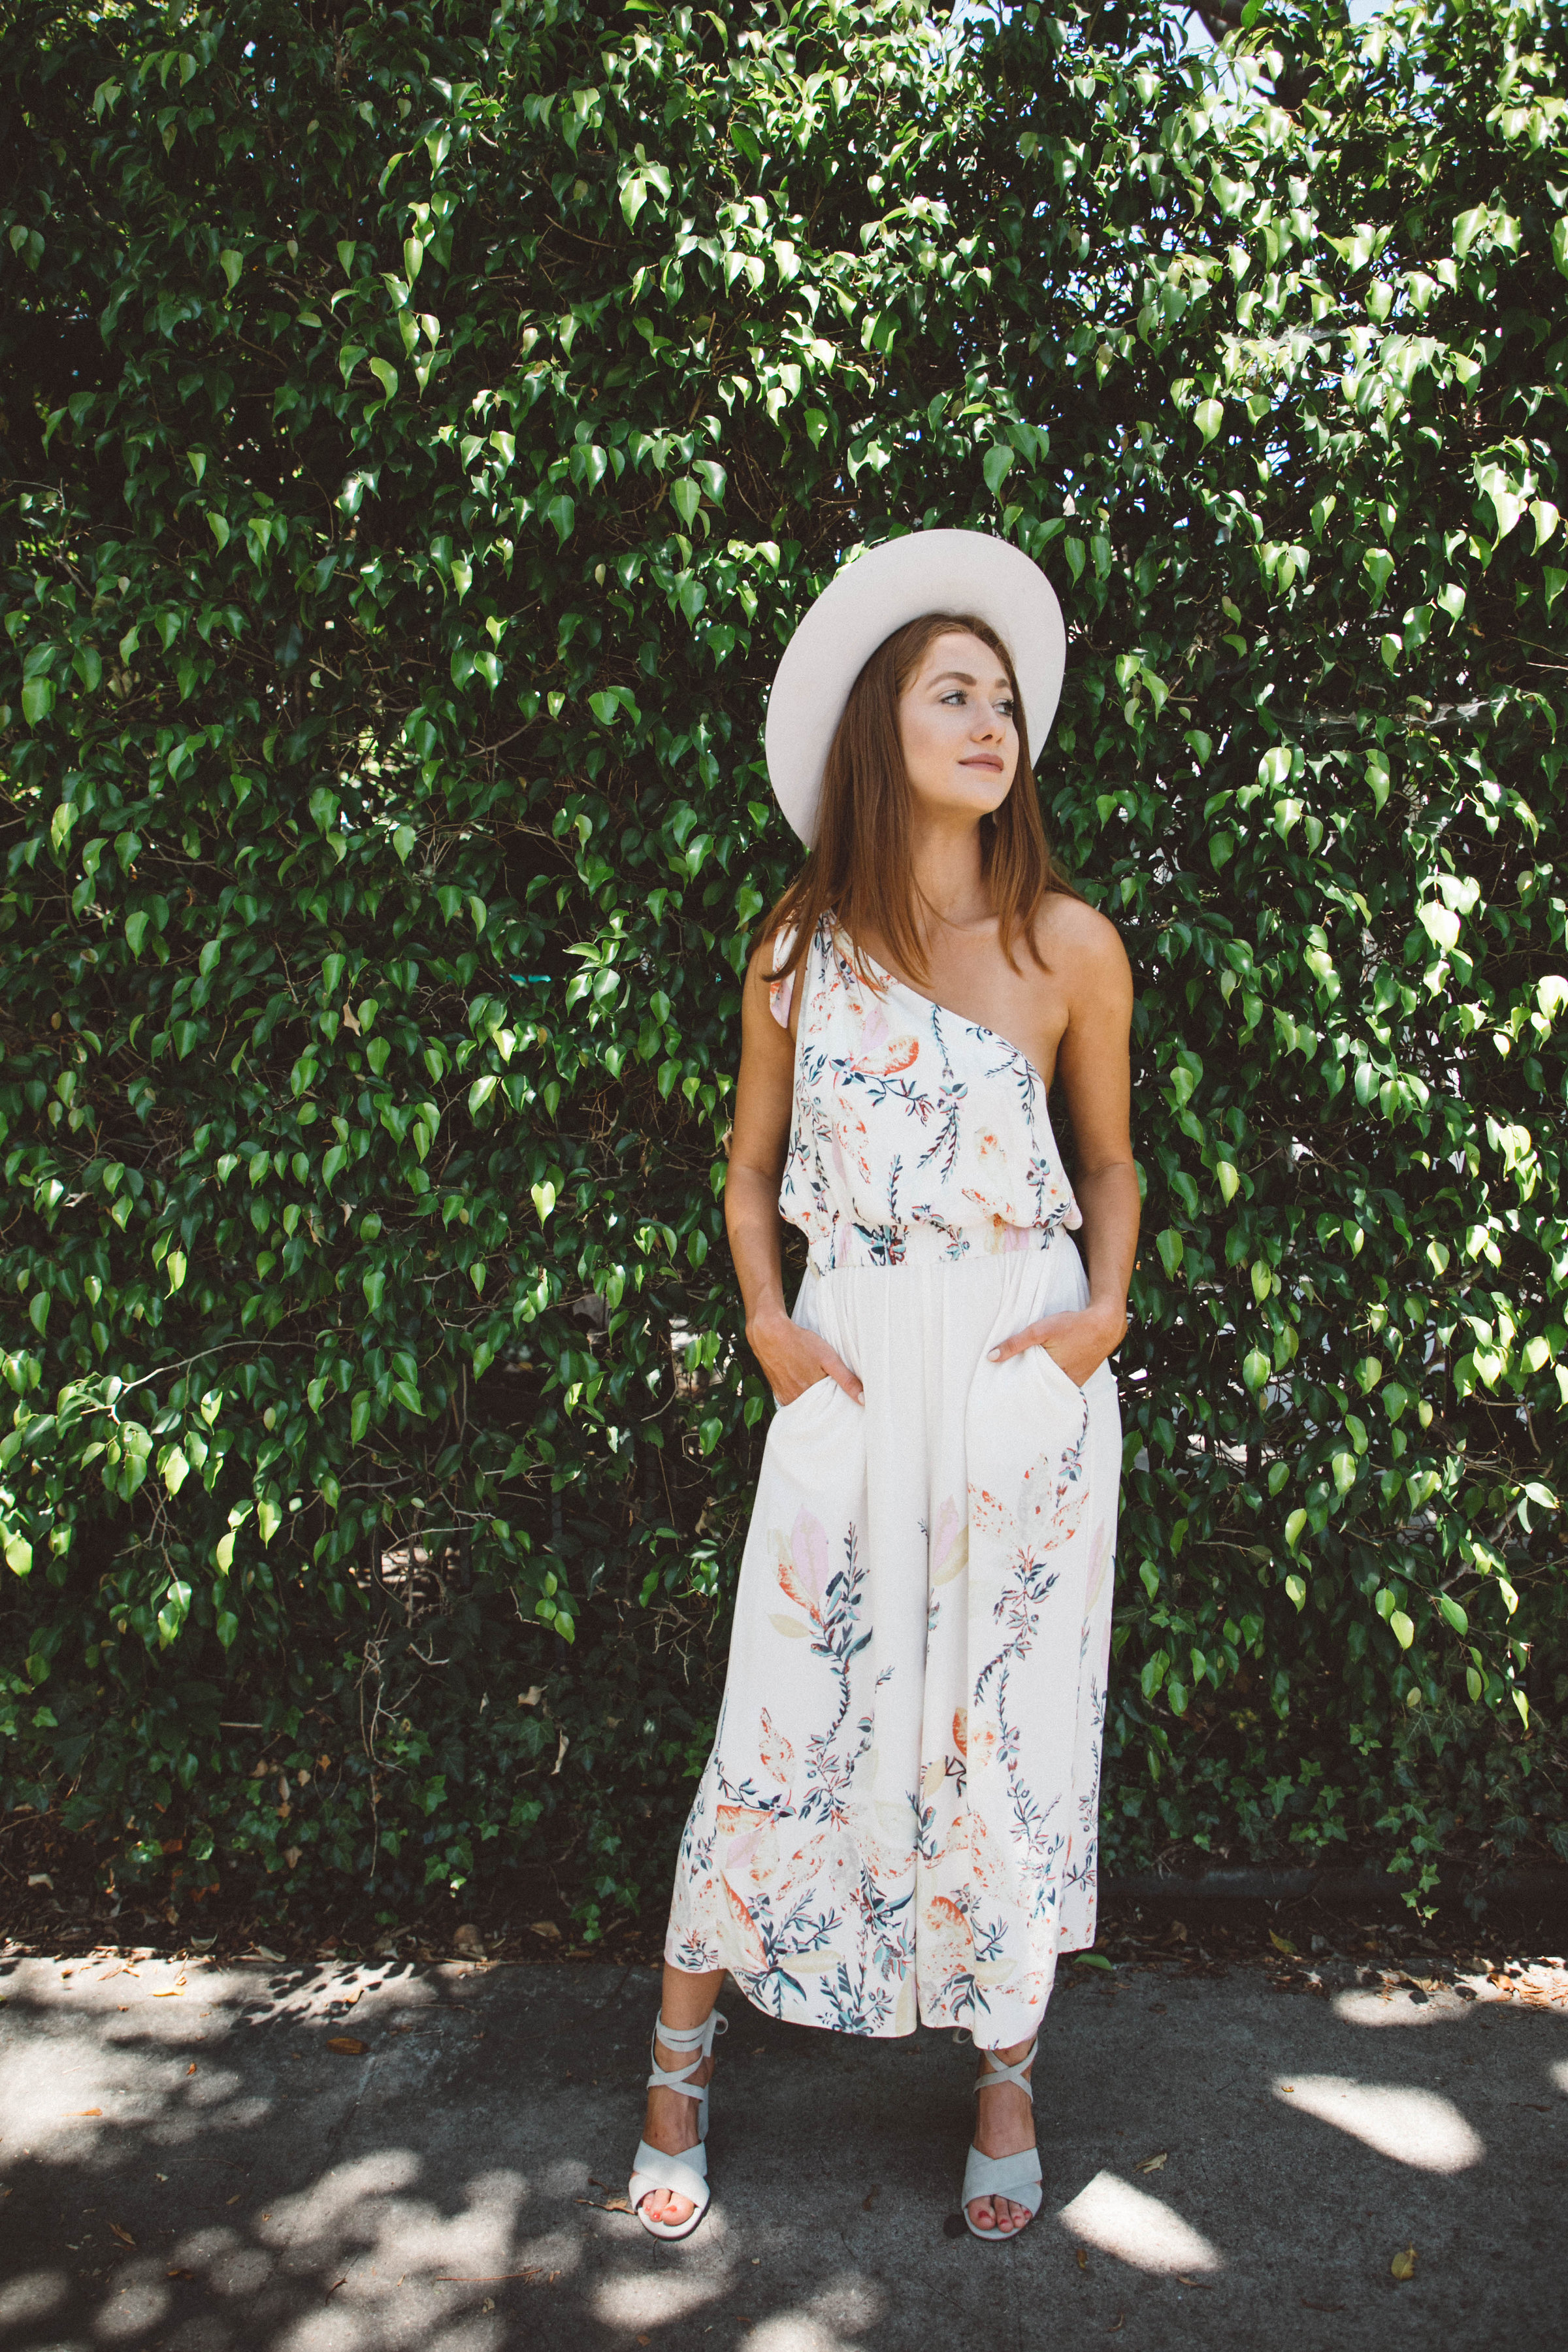 a770ad78478c five wedding outfit ideas that are not dresses - free people floral  jumpsuit -